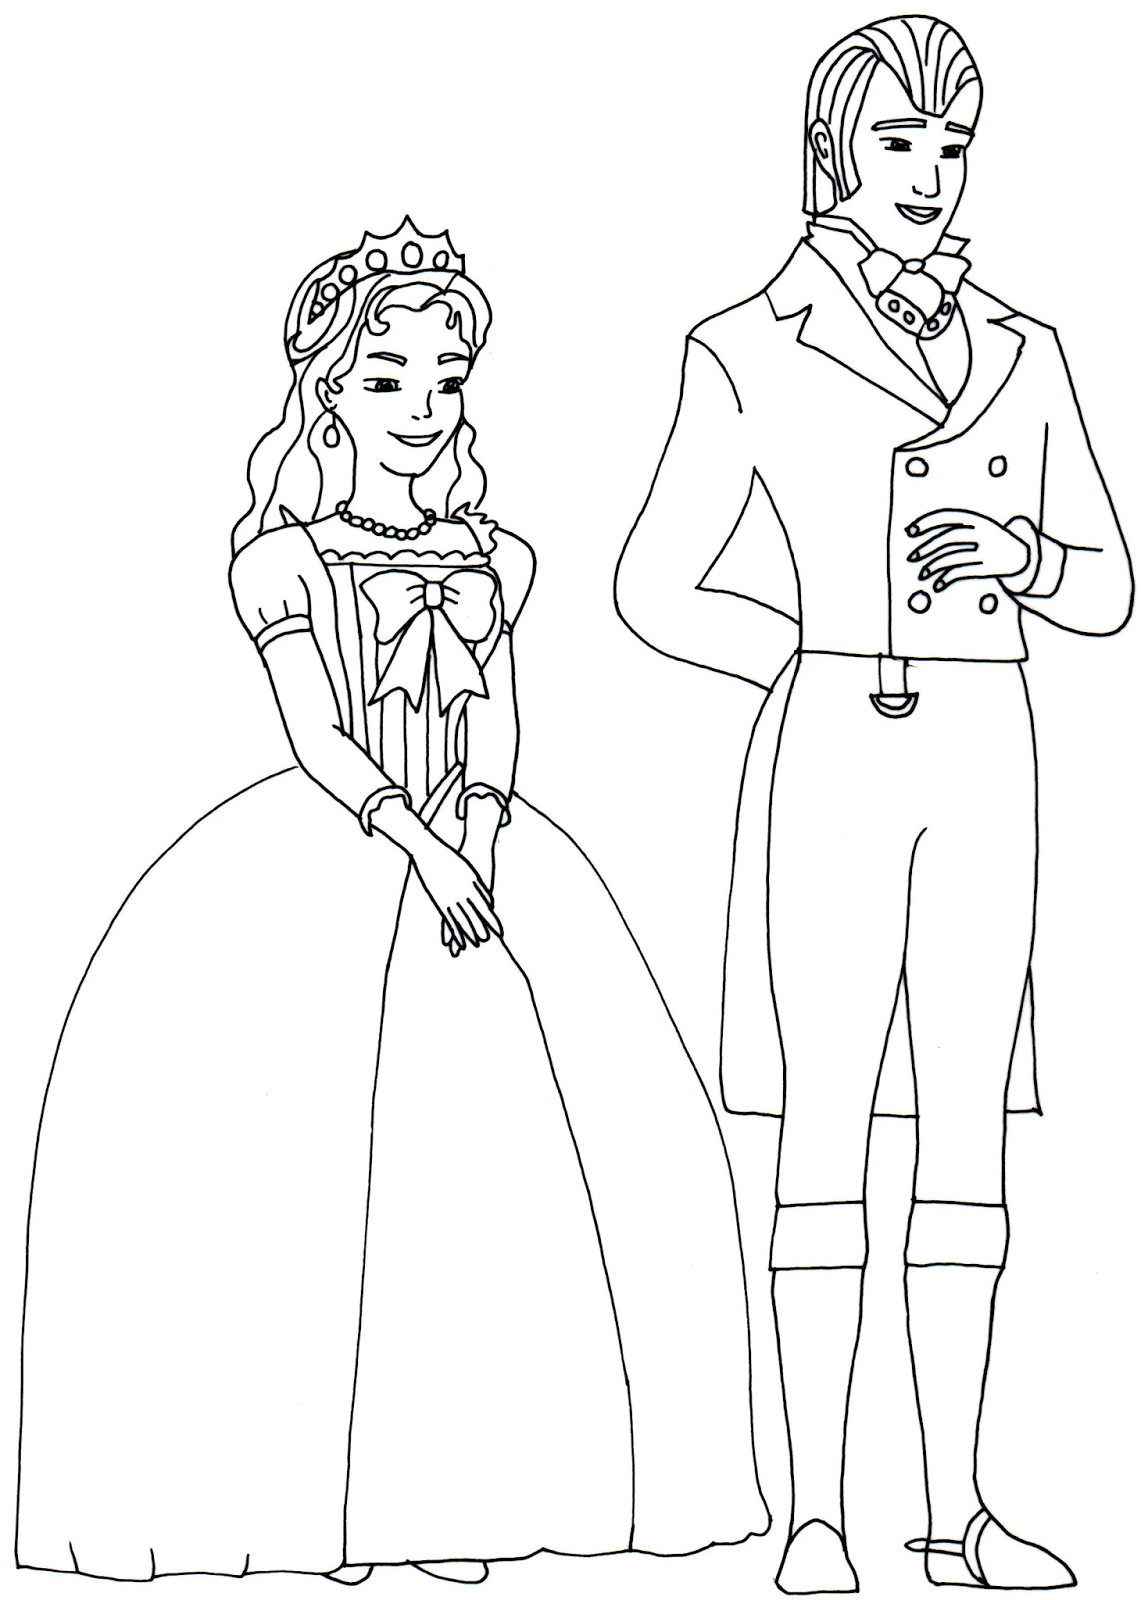 King and queen sofia the first coloring page | Coloring For Kids ...